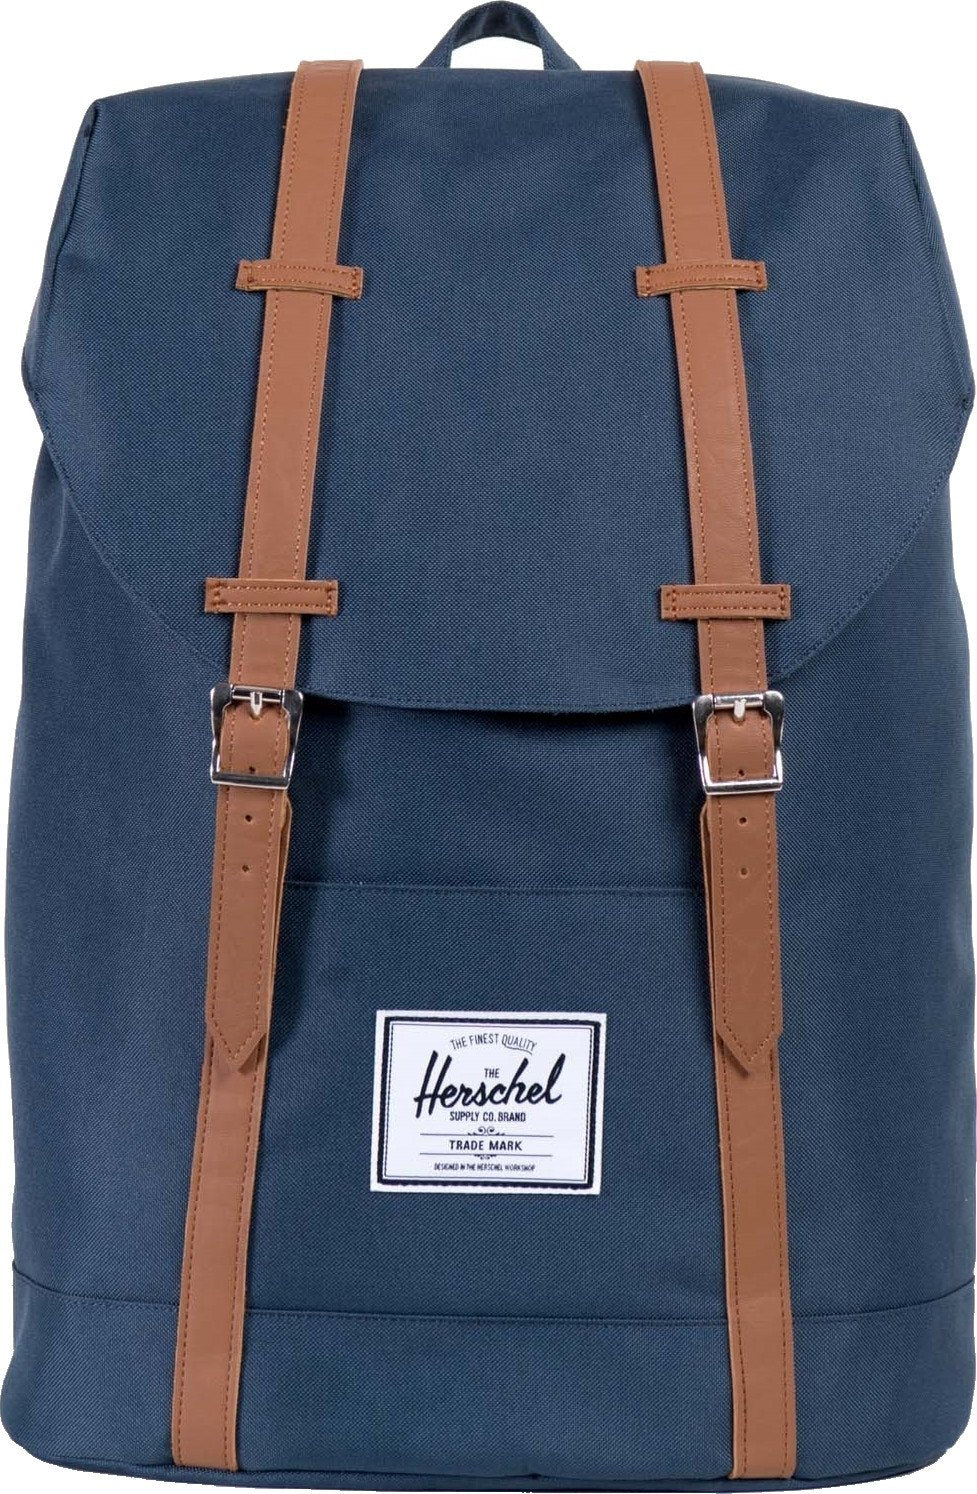 Herschel Supply Co Retreat Straps Backpack Rucksack Bag Navy